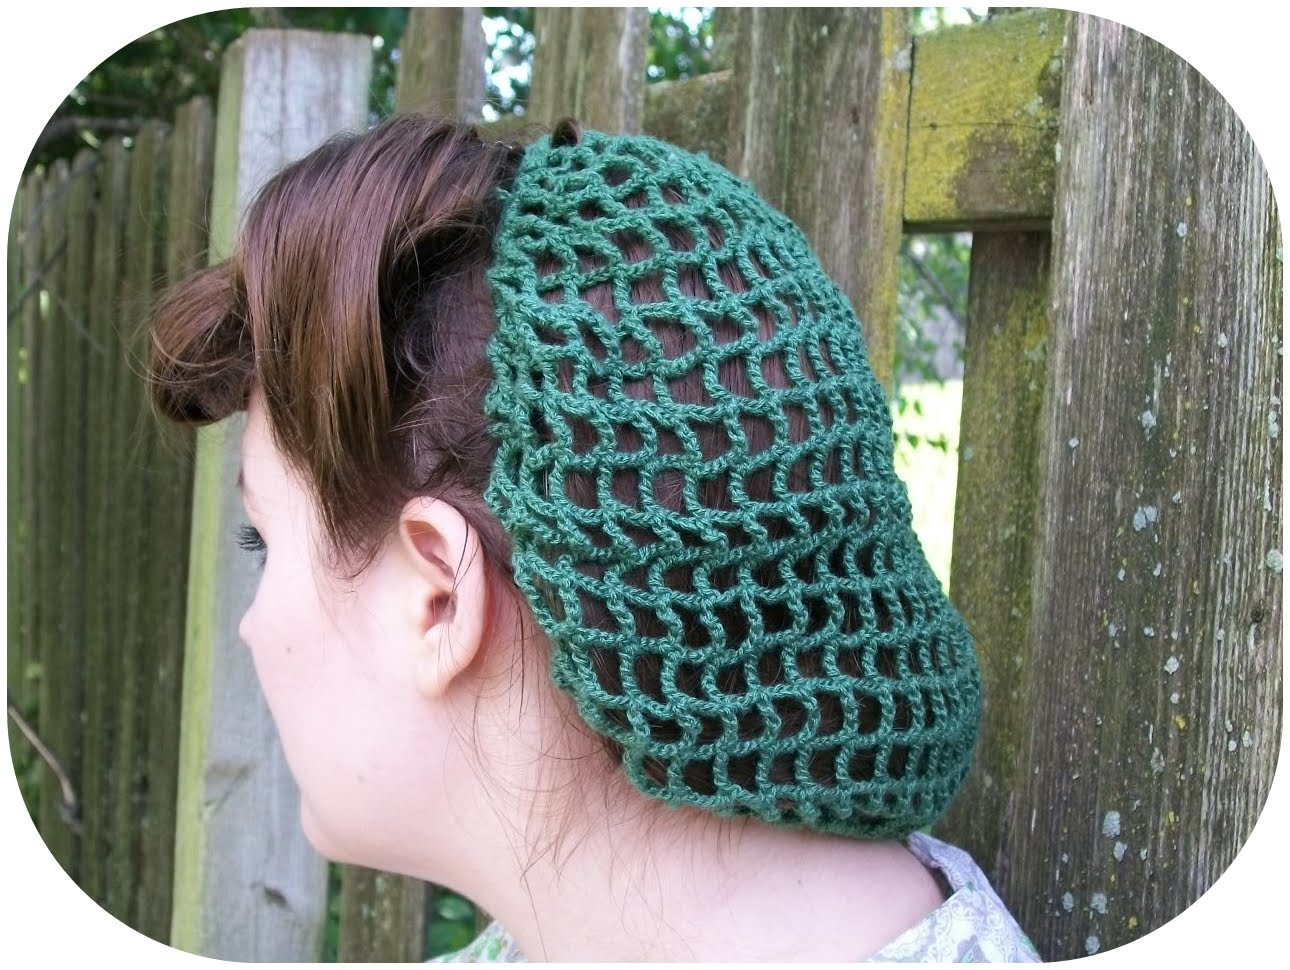 Crochet Hair Net Snood Pattern : FREE CROCHET SNOOD PATTERNS Crochet Tutorials